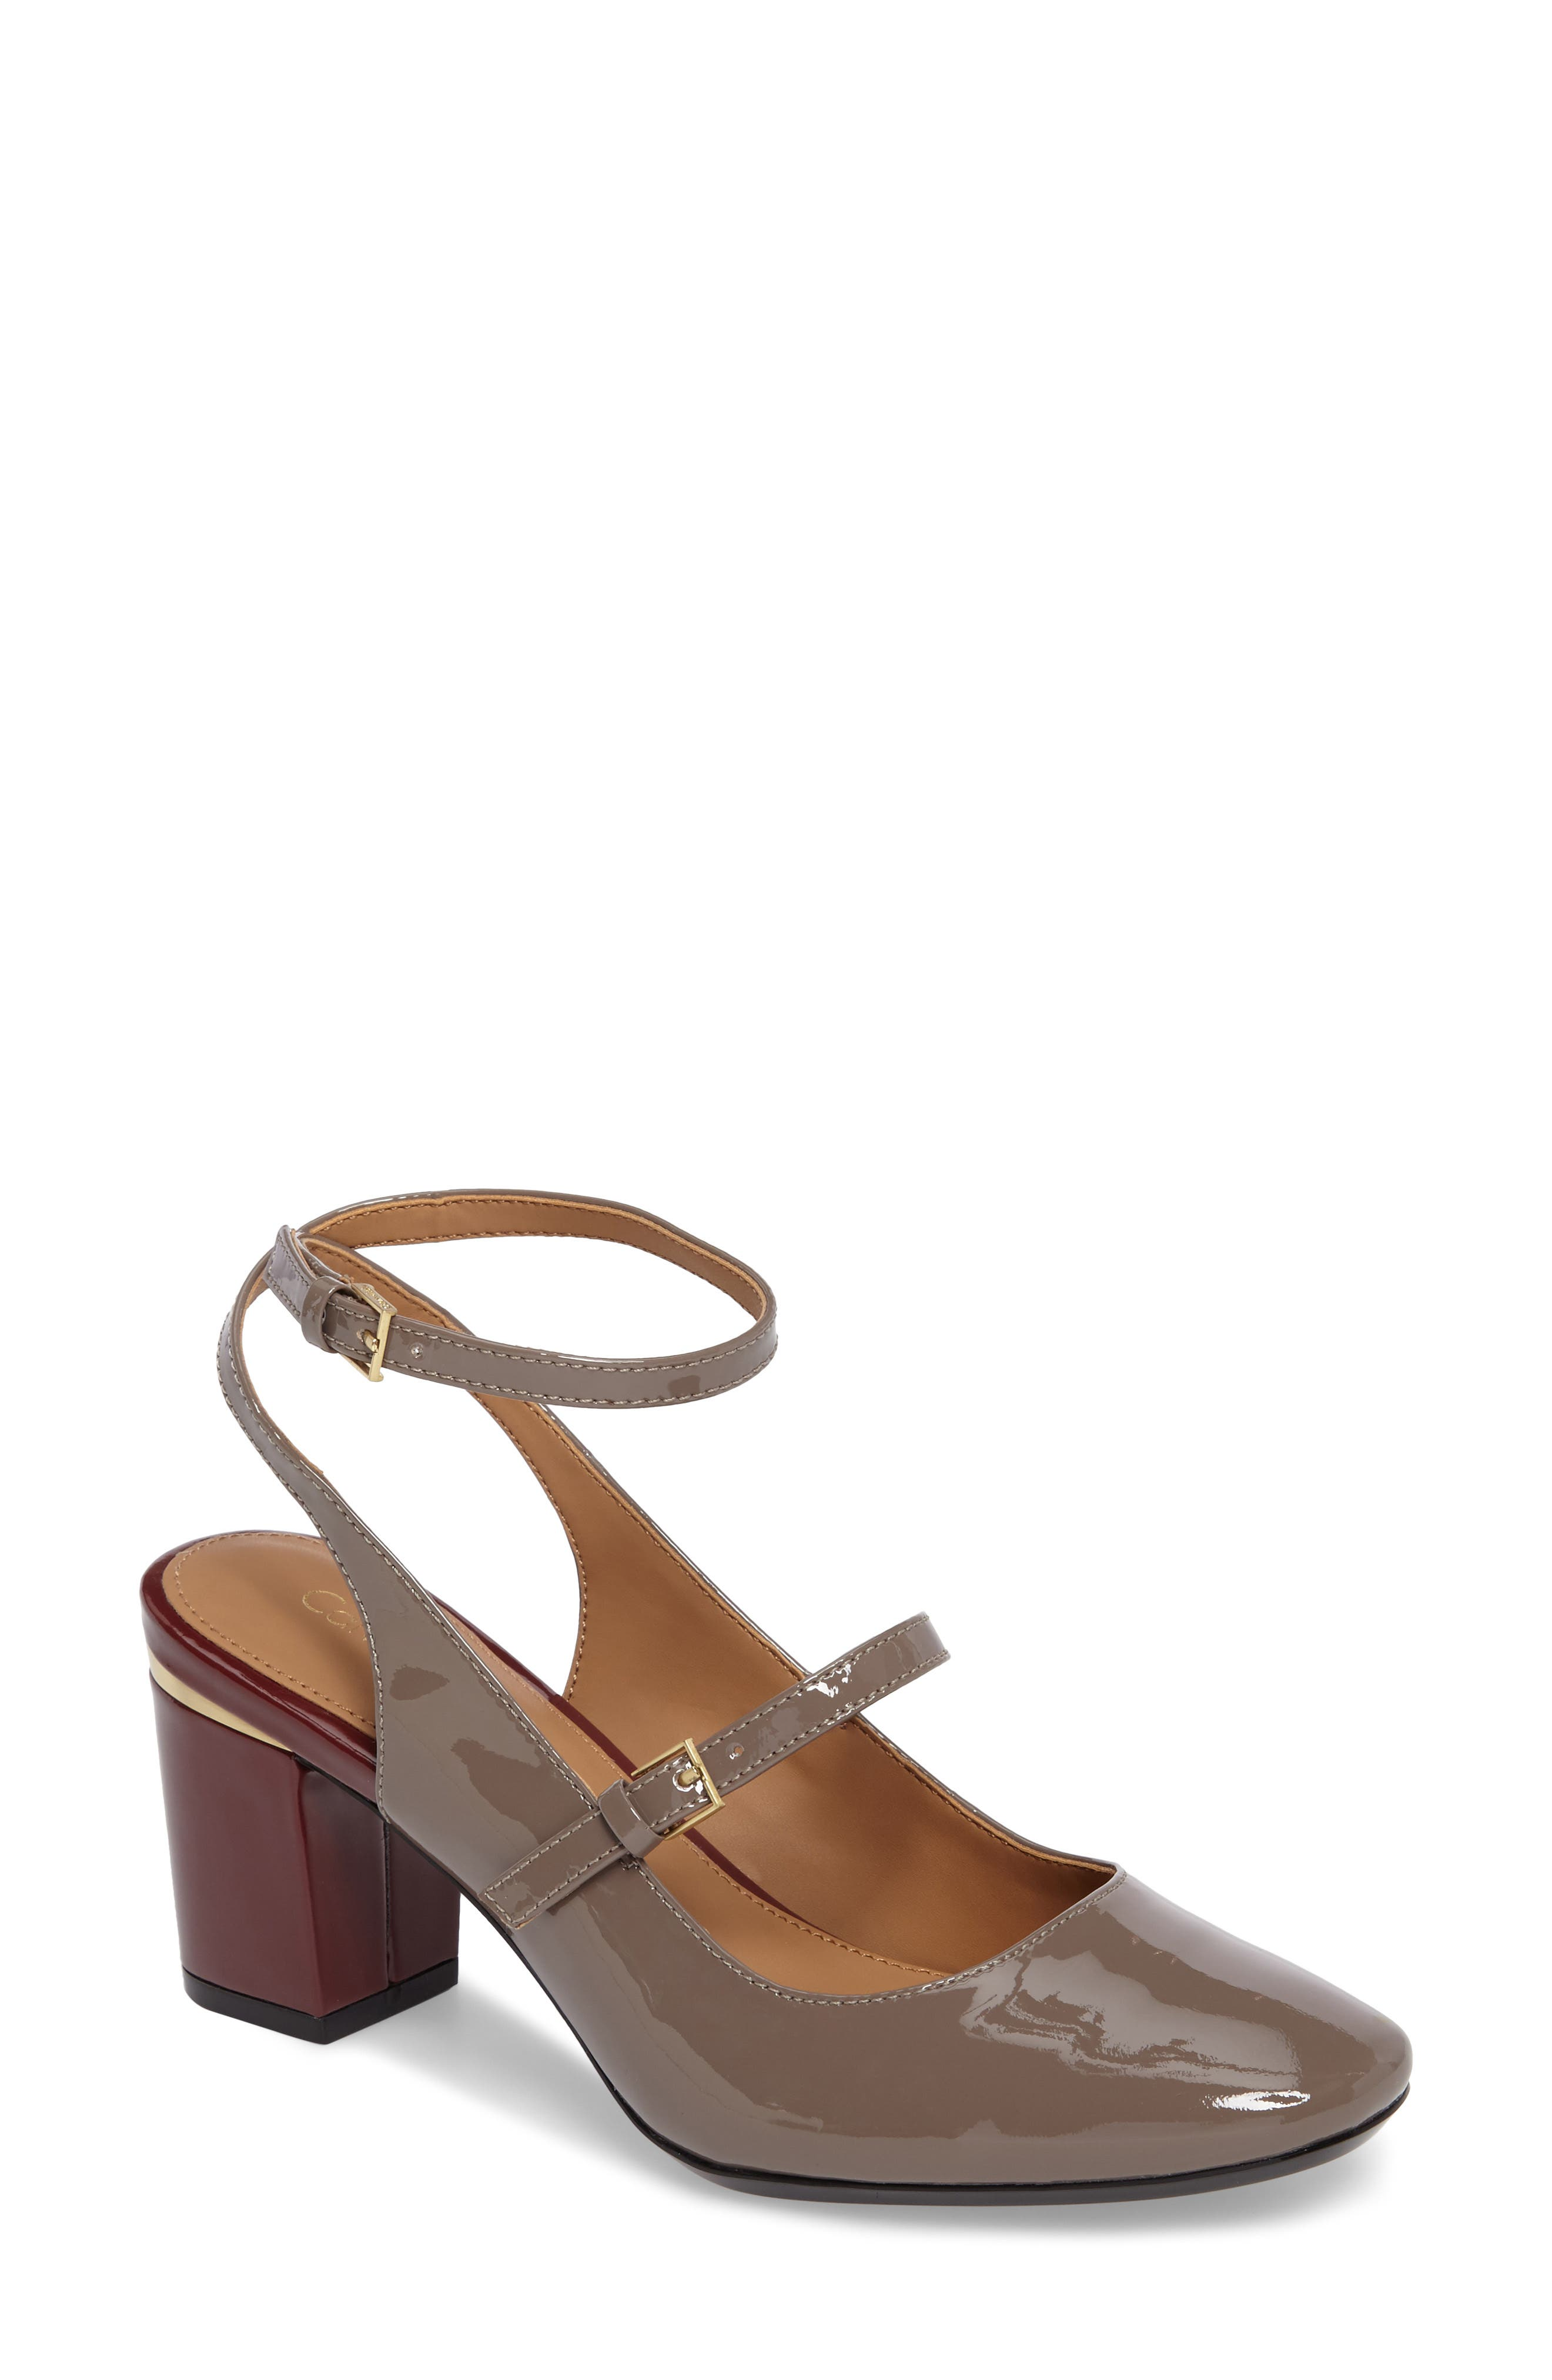 Cleary Wraparound Mary Jane Pump,                             Main thumbnail 1, color,                             Winter Taupe